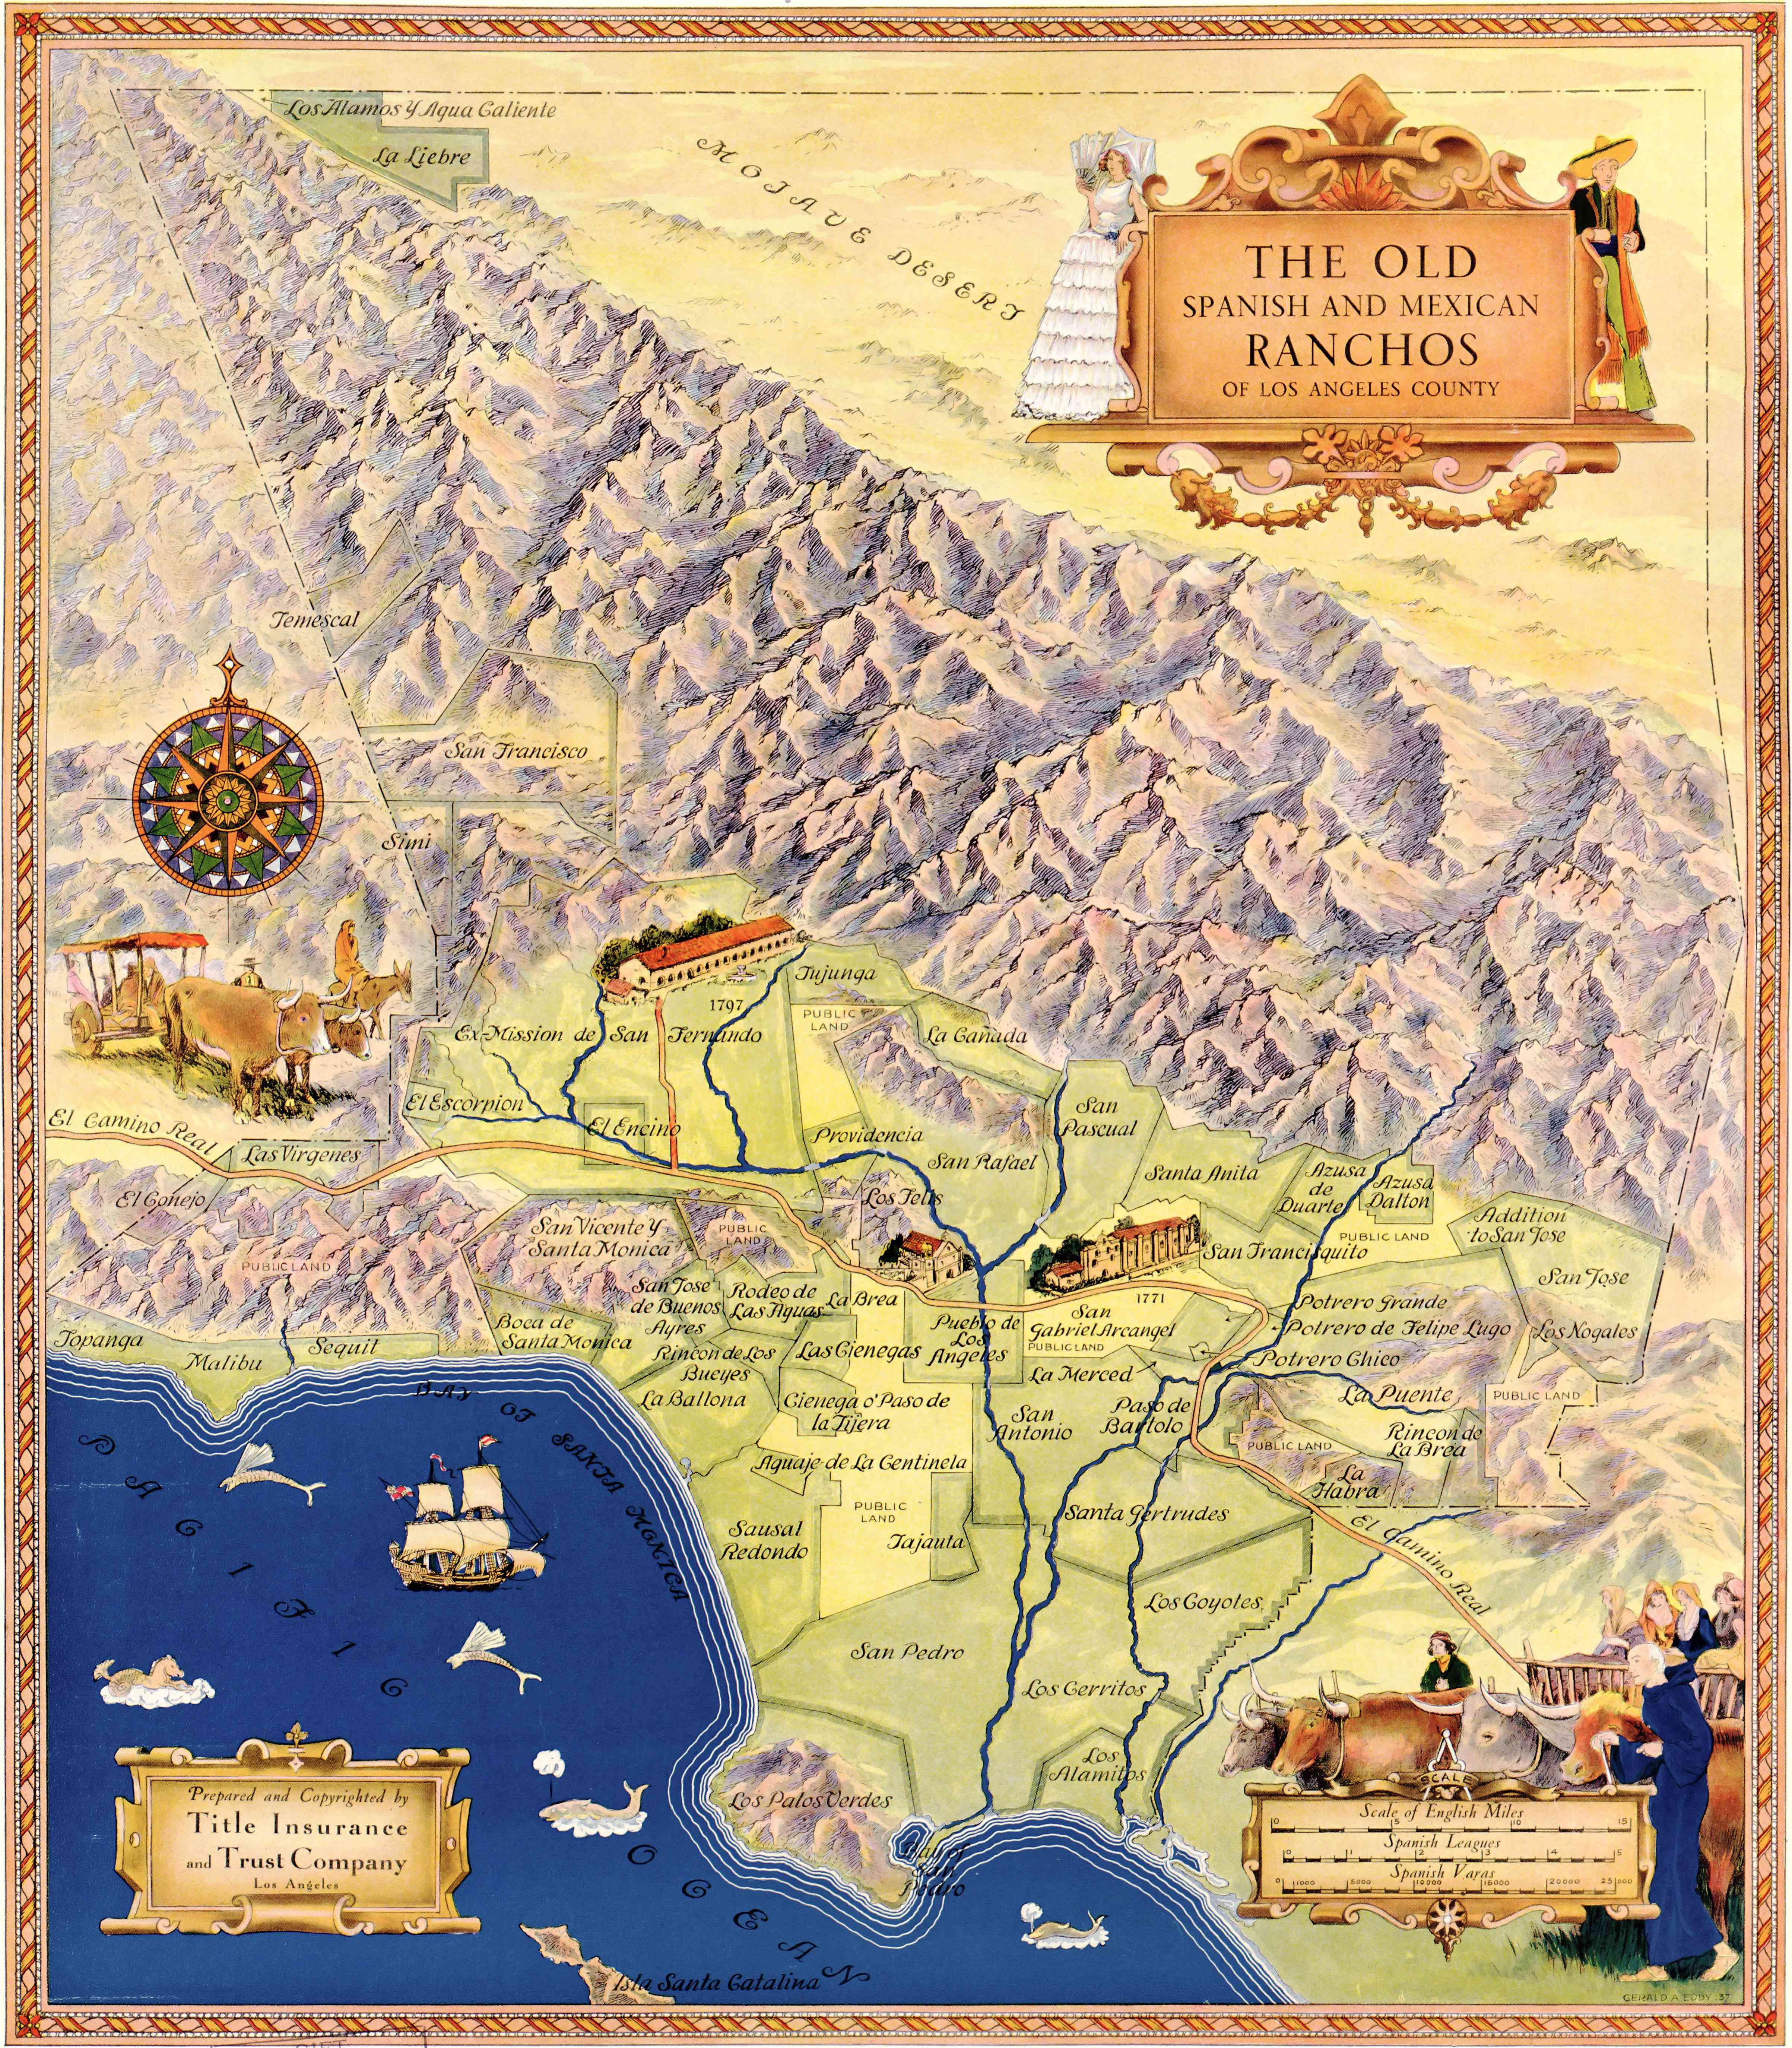 Illustrated Map of the Old Spanish and Mexican Ranchos of ... on ventura county map, south bend county map, riverside county, downtown los angeles, santa clarita, ventura county, san francisco county map, santa monica, san diego county map, south carolina map, northwest oregon county map, orange county, pasadena map, burbank county map, san diego county, california map, la county map, kern county map, riverside map, butte county map, long beach, beverly hills, glendale map, sf bay county map, santa cruz county map, southern california, san bernardino county, bernardino county map, indianapolis county map, hollywood map, san francisco bay area, orange county map,